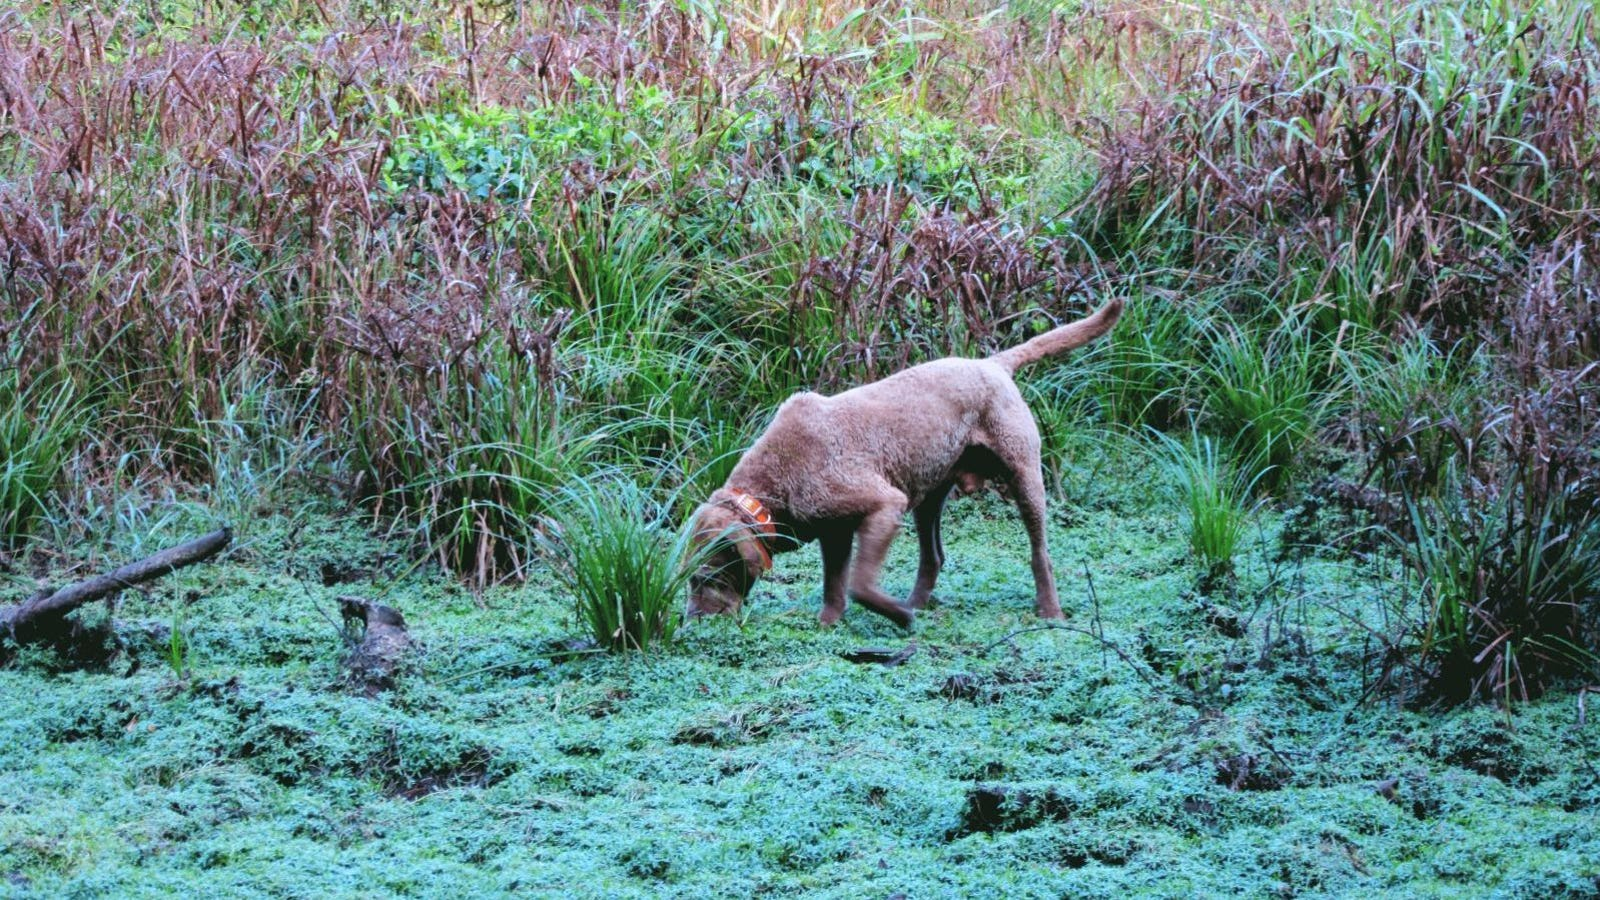 QnA VBage Meet the Poop-Sniffing Dog Helping Map a Giant Wildlife Sanctuary